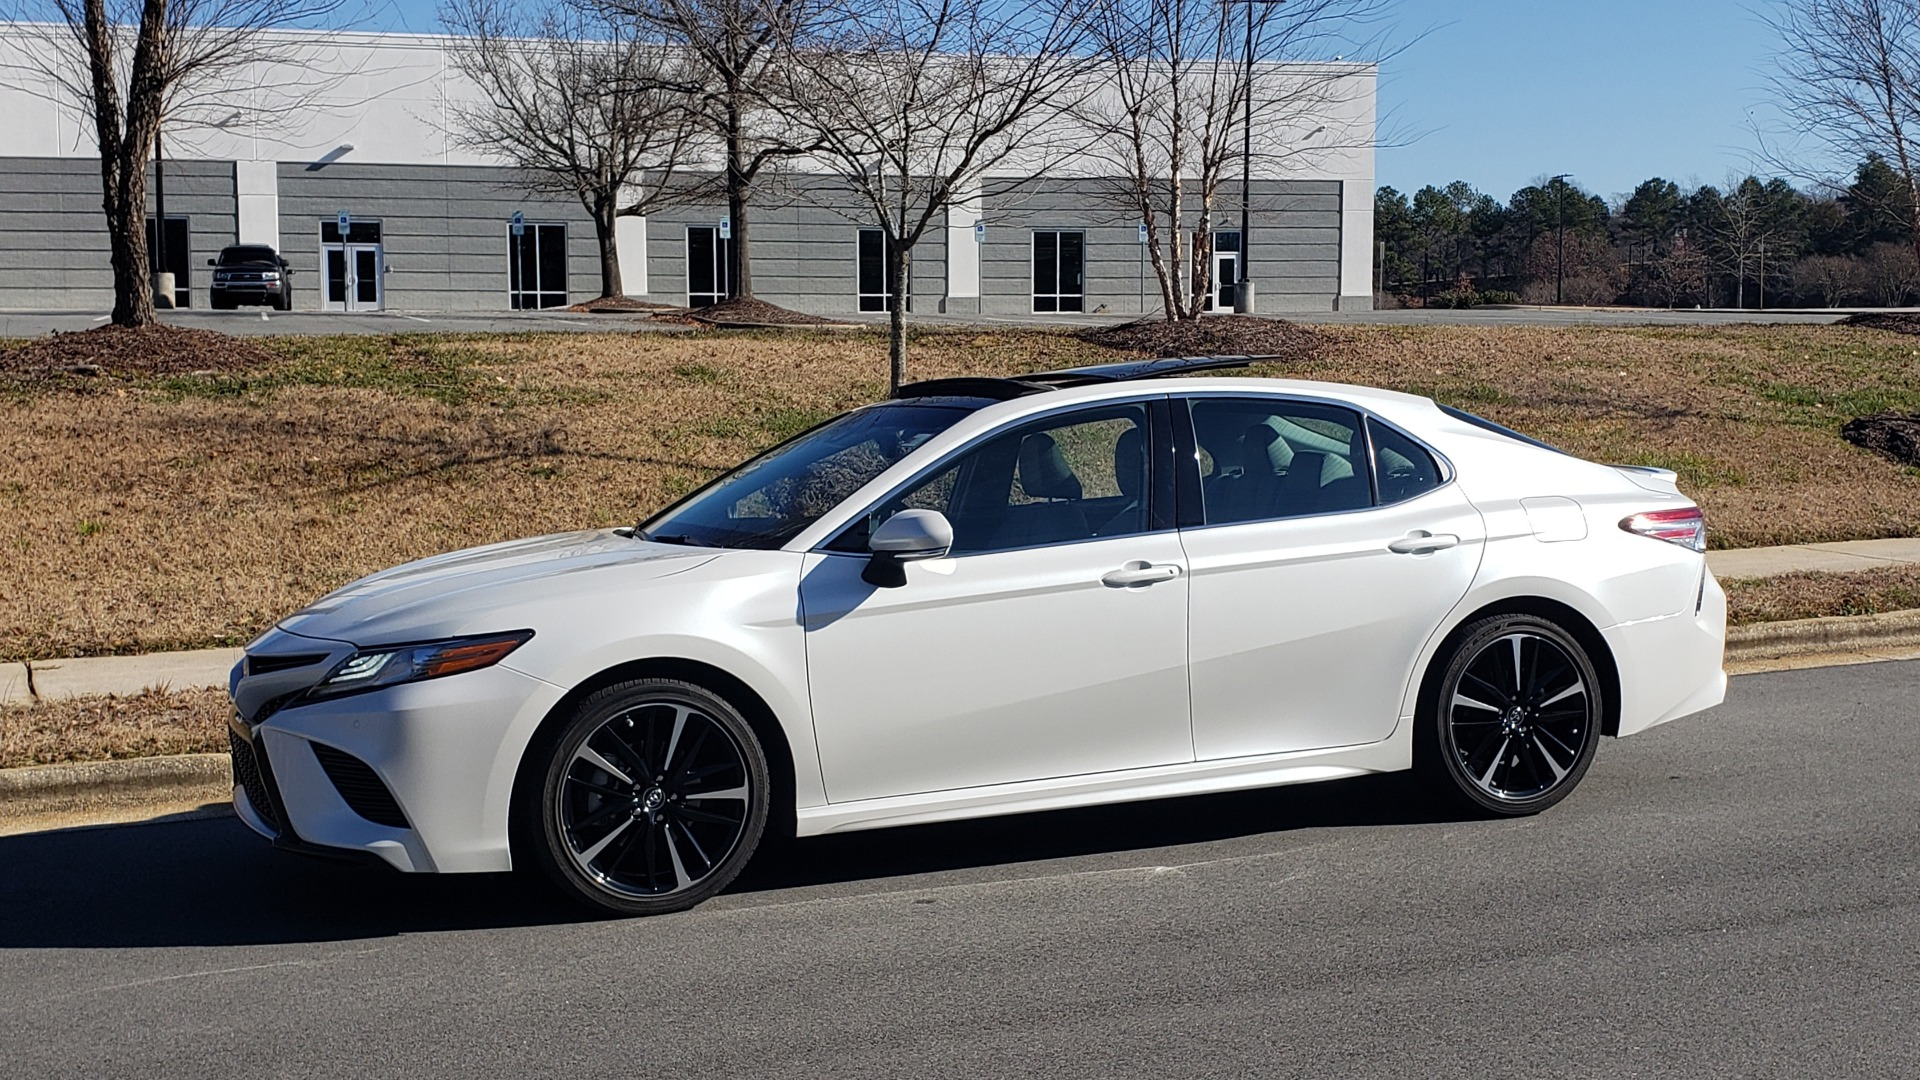 Used 2018 Toyota CAMRY XSE 2.5L SEDAN / 8-SPD AUTO / PANO-ROOF / 19IN WHEELS for sale $22,995 at Formula Imports in Charlotte NC 28227 2